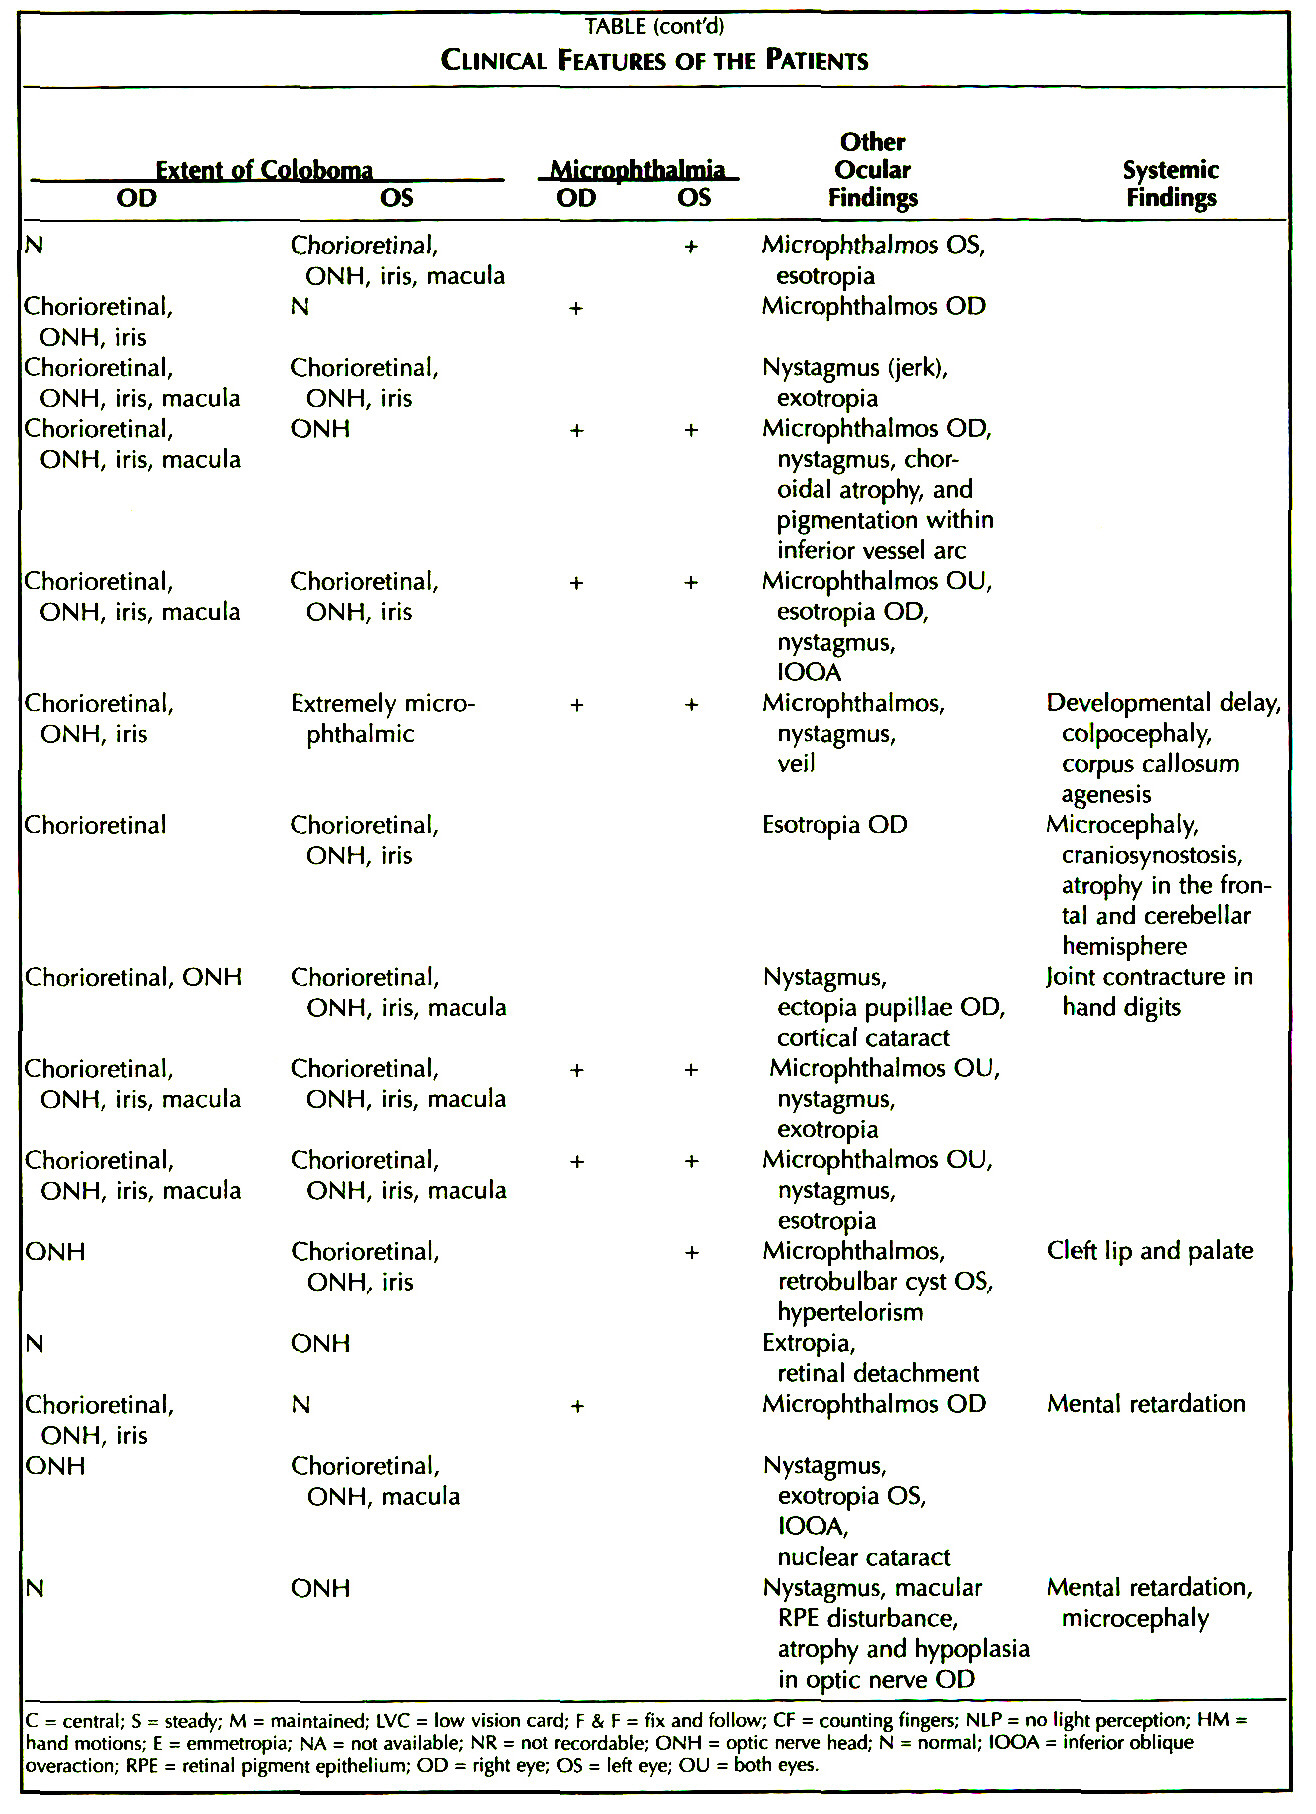 TABLEClinical Features of the Patients